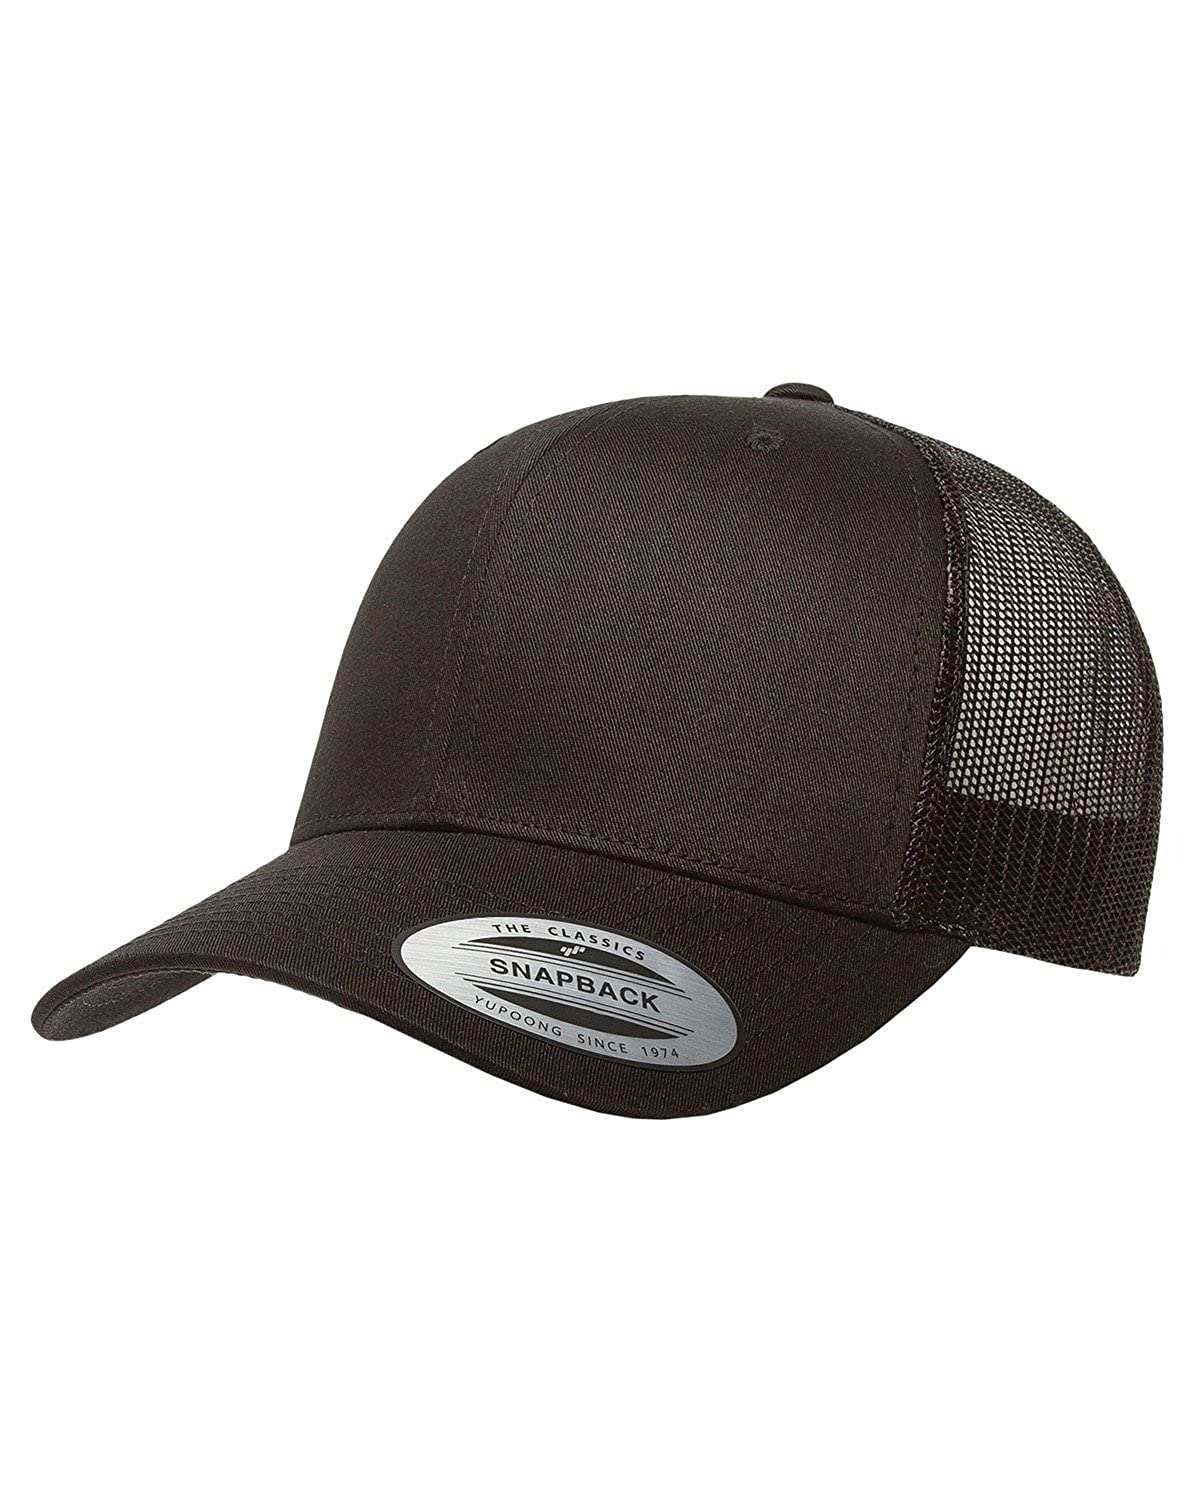 Amazon.com  Yupoong 6606 - Retro Trucker  Clothing 8cab493c538